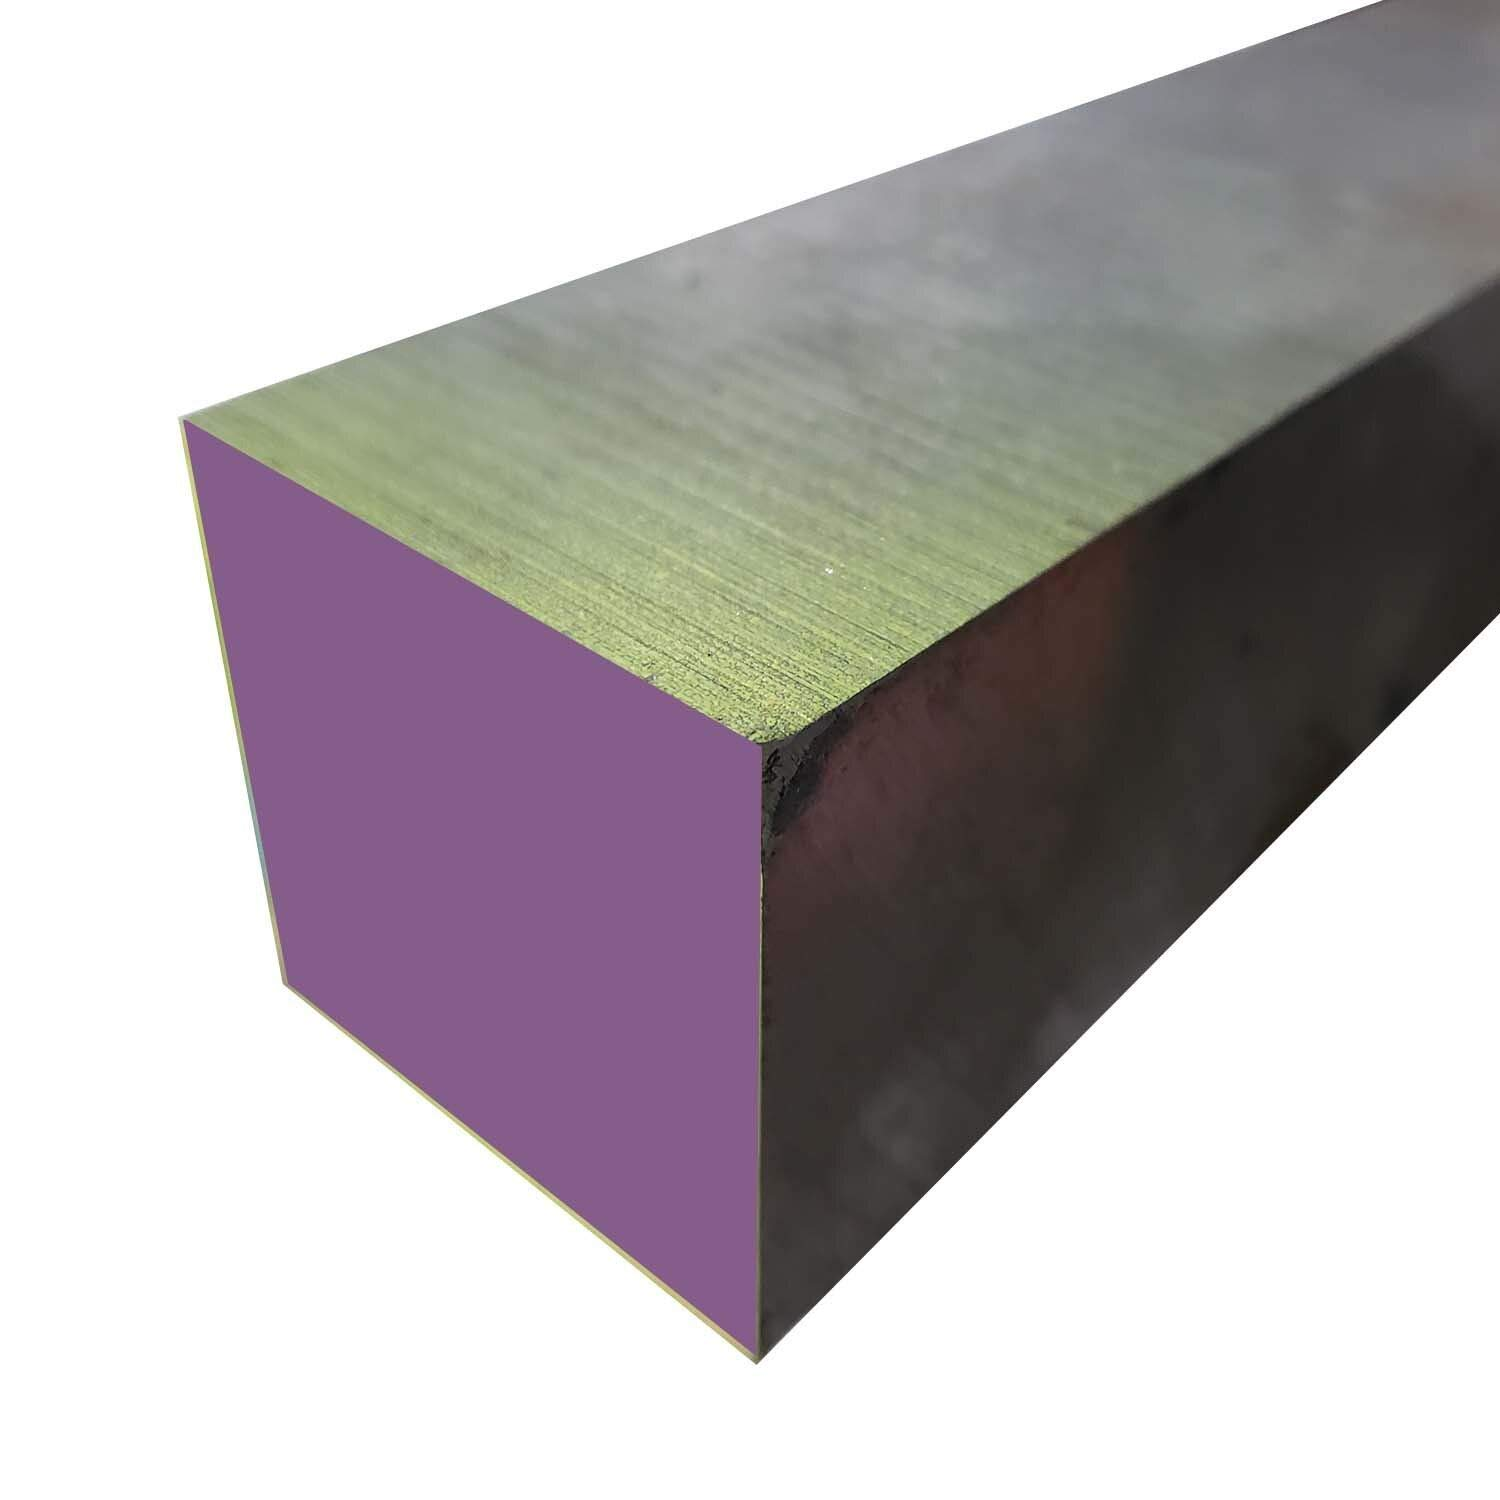 Online Metal Supply 8620 Hot Rolled Steel Plate, 4-1/2'' x 4-1/2'' x 8'' by Online Metal Supply